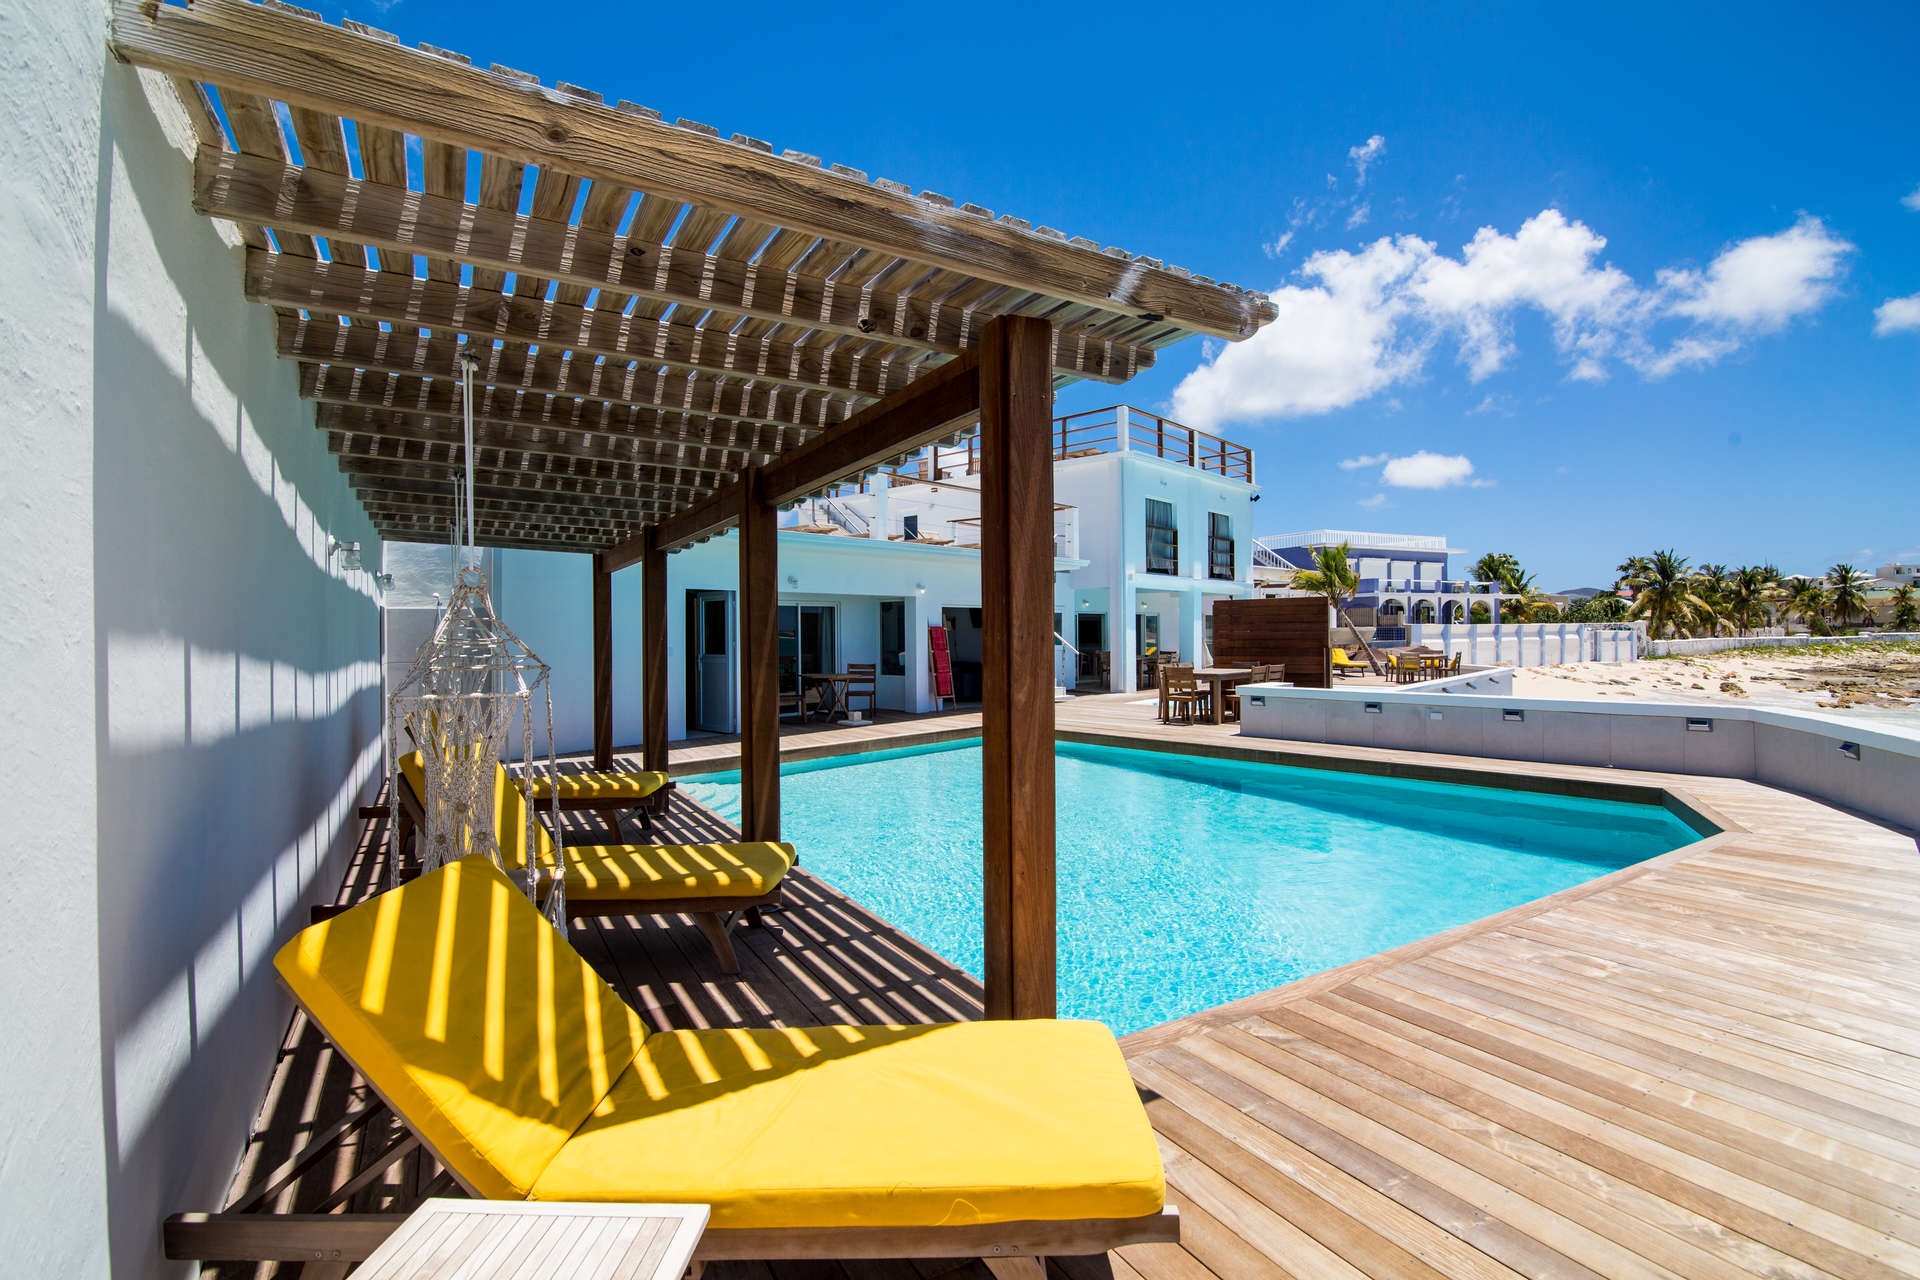 Luxury villa rentals caribbean - St martin - Sint maarten - Beacon hill - Villa Mary's Beach Cottage - Image 1/19